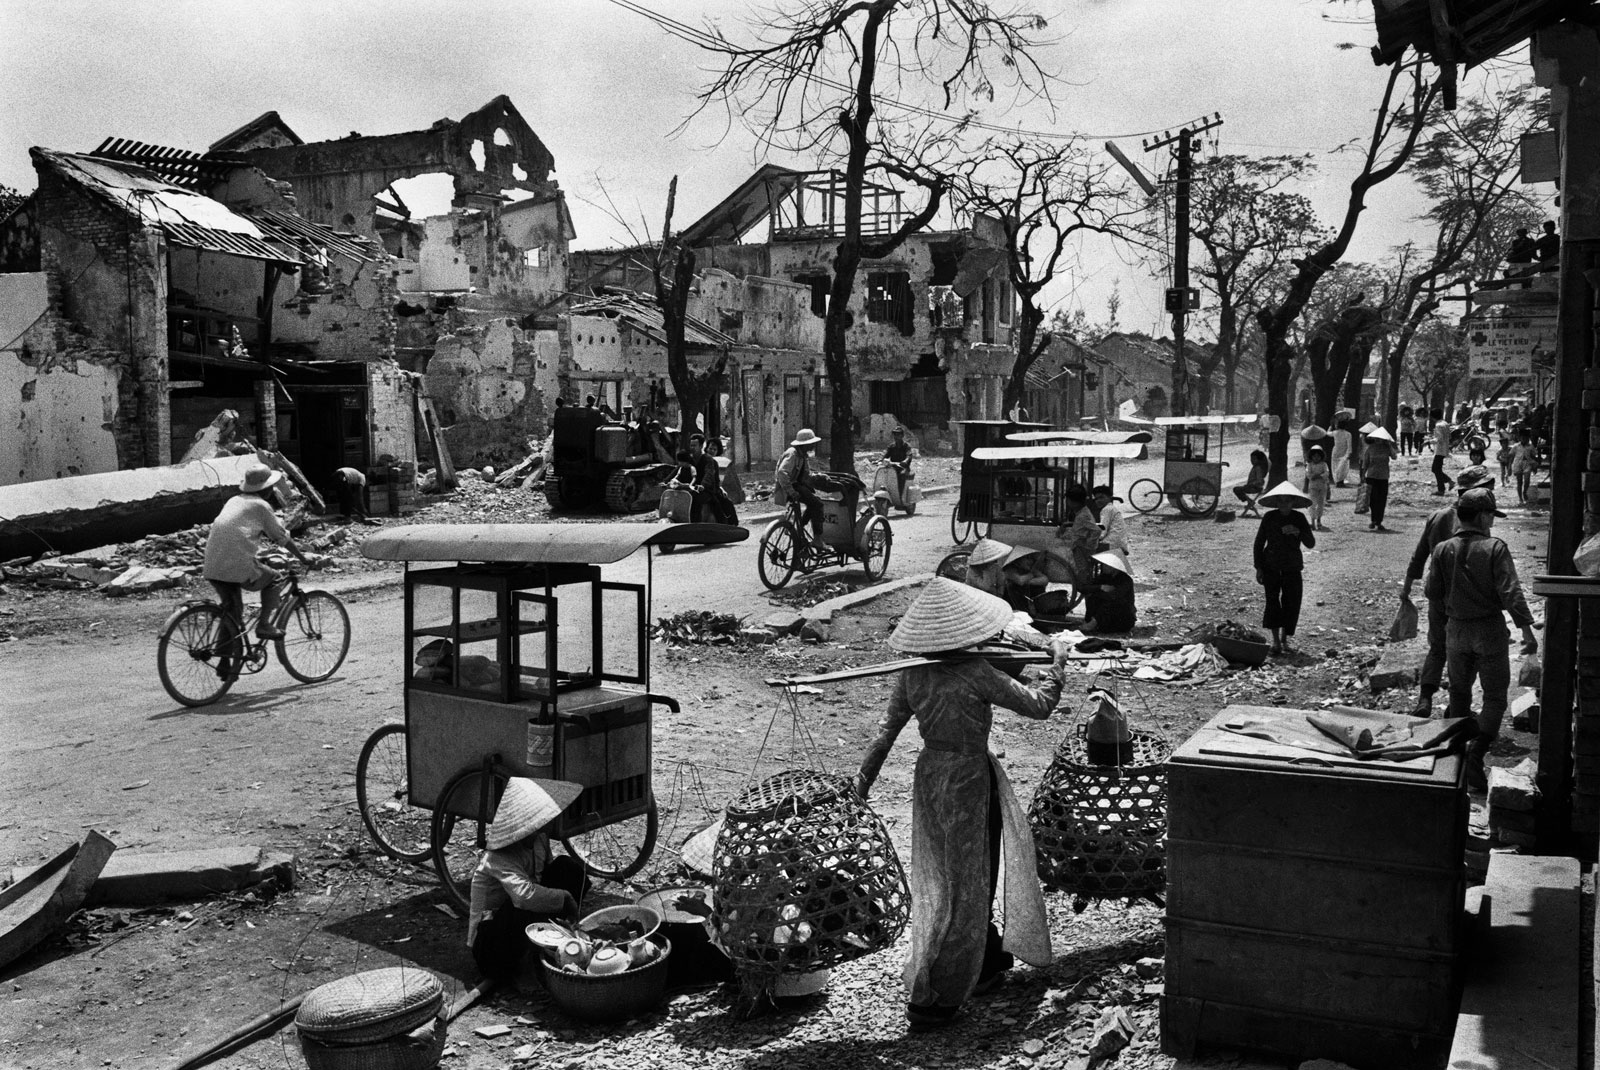 black and white image of the rubble in Hue, with people walking and bicycling, one woman in a hat carrying balanced bags over her shoulder